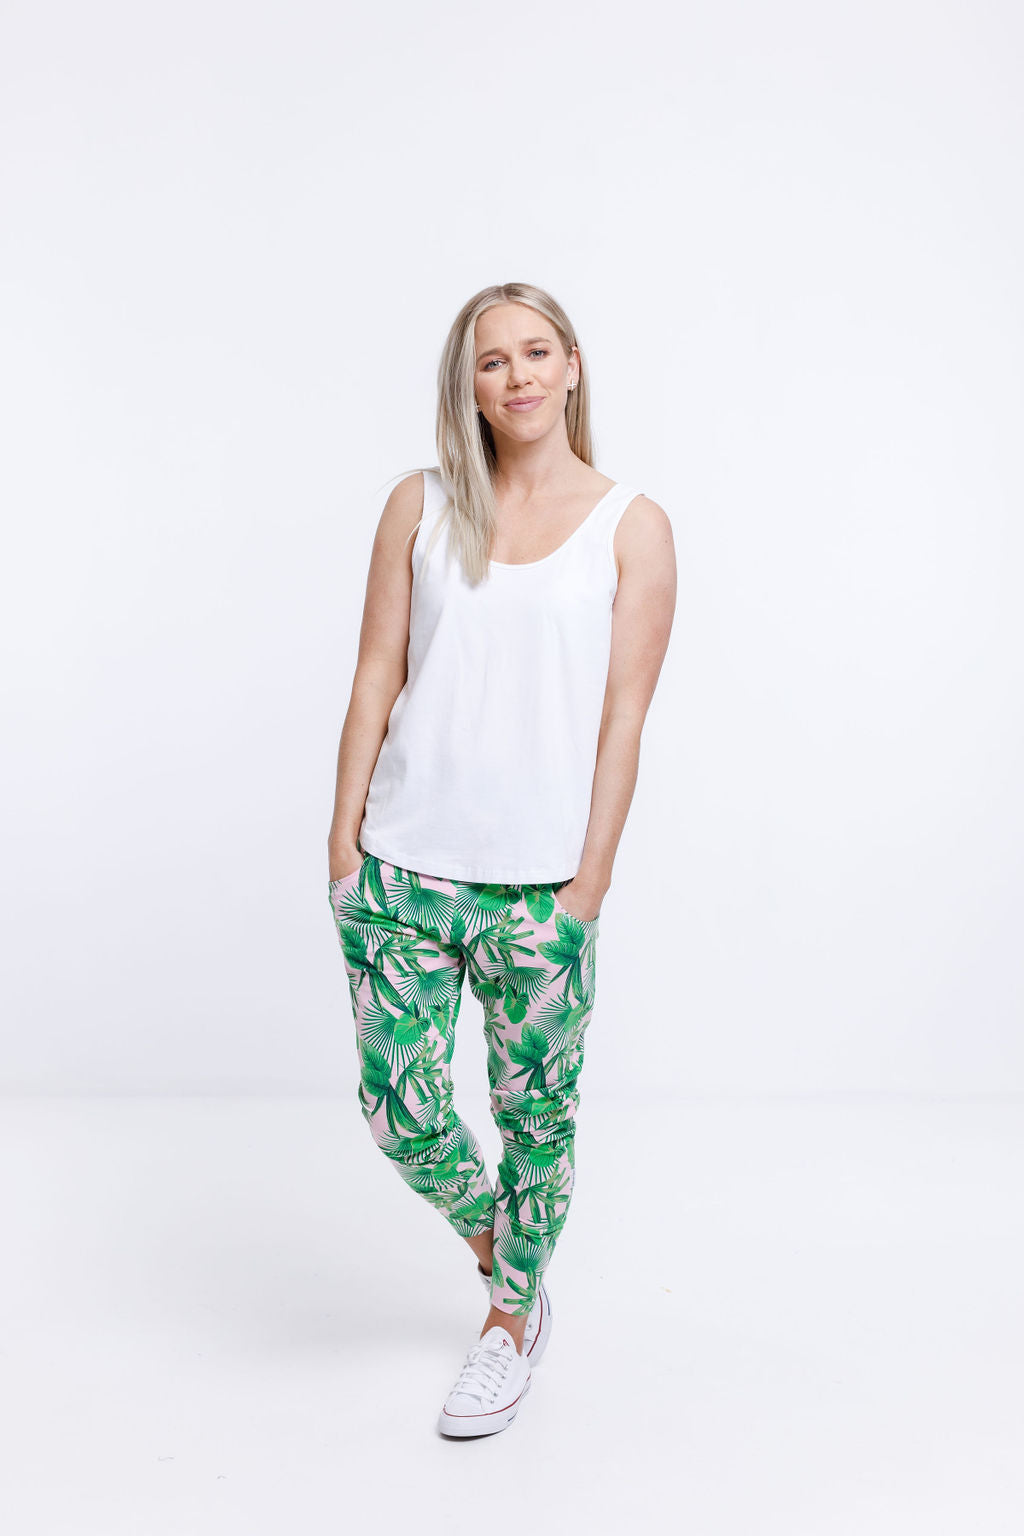 APARTMENT PANTS - Tropical Palm Print